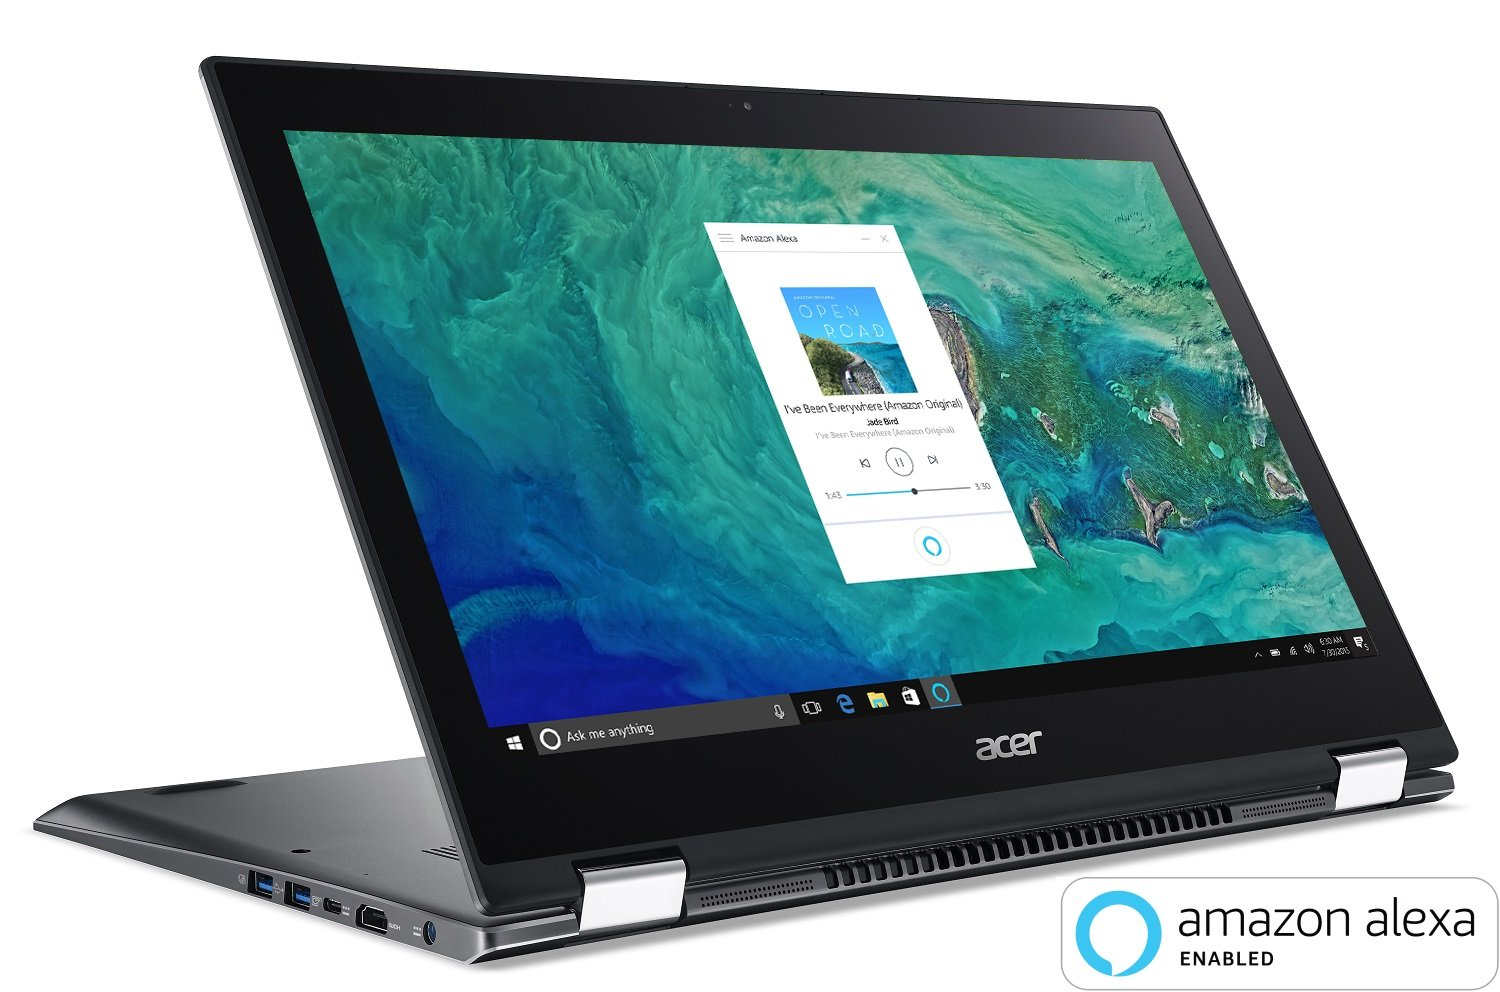 """Acer Spin 5 SP515-51GN-807G, 15.6"""" Full HD Touch, 8th Gen Intel Core  i7-8550U, GeForce GTX 1050, Amazon Alexa Enabled, 8GB DDR4, 1TB HDD,  Convertible, ..."""